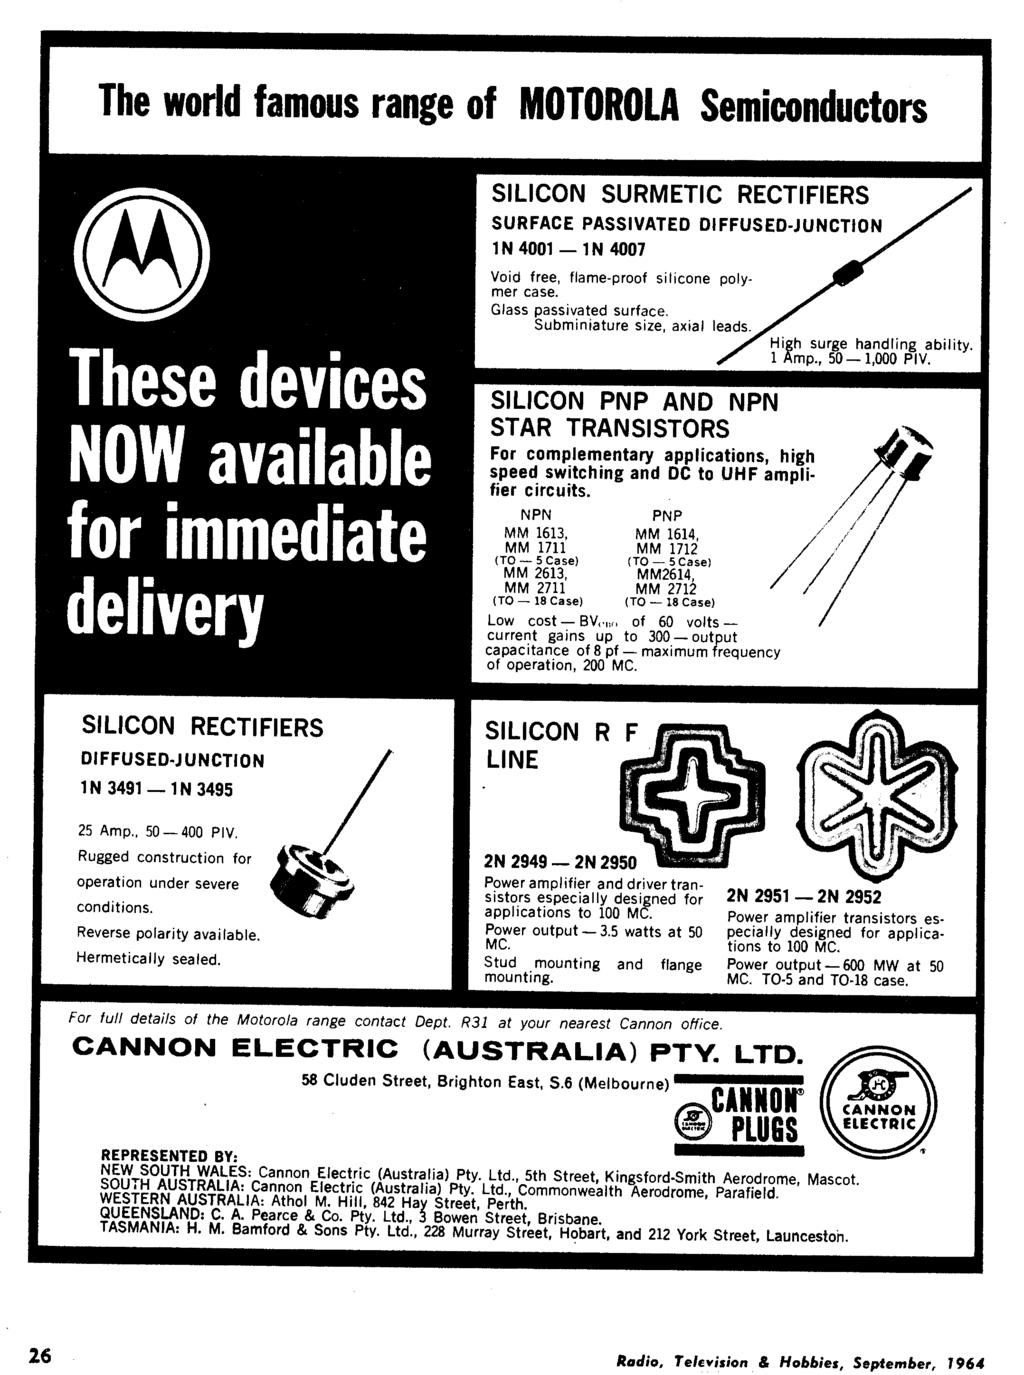 September 1964 Radio Vol 26 No 6 Iadio Television Y Fl Programmable Integrated Circuit Ad826arzreel7 Hi Speed Dual Low Pwr The World Famous Range Of Motorola Semiconductors Silicon Surmetic Rectifiers Surface Passivated Diffused Junction In